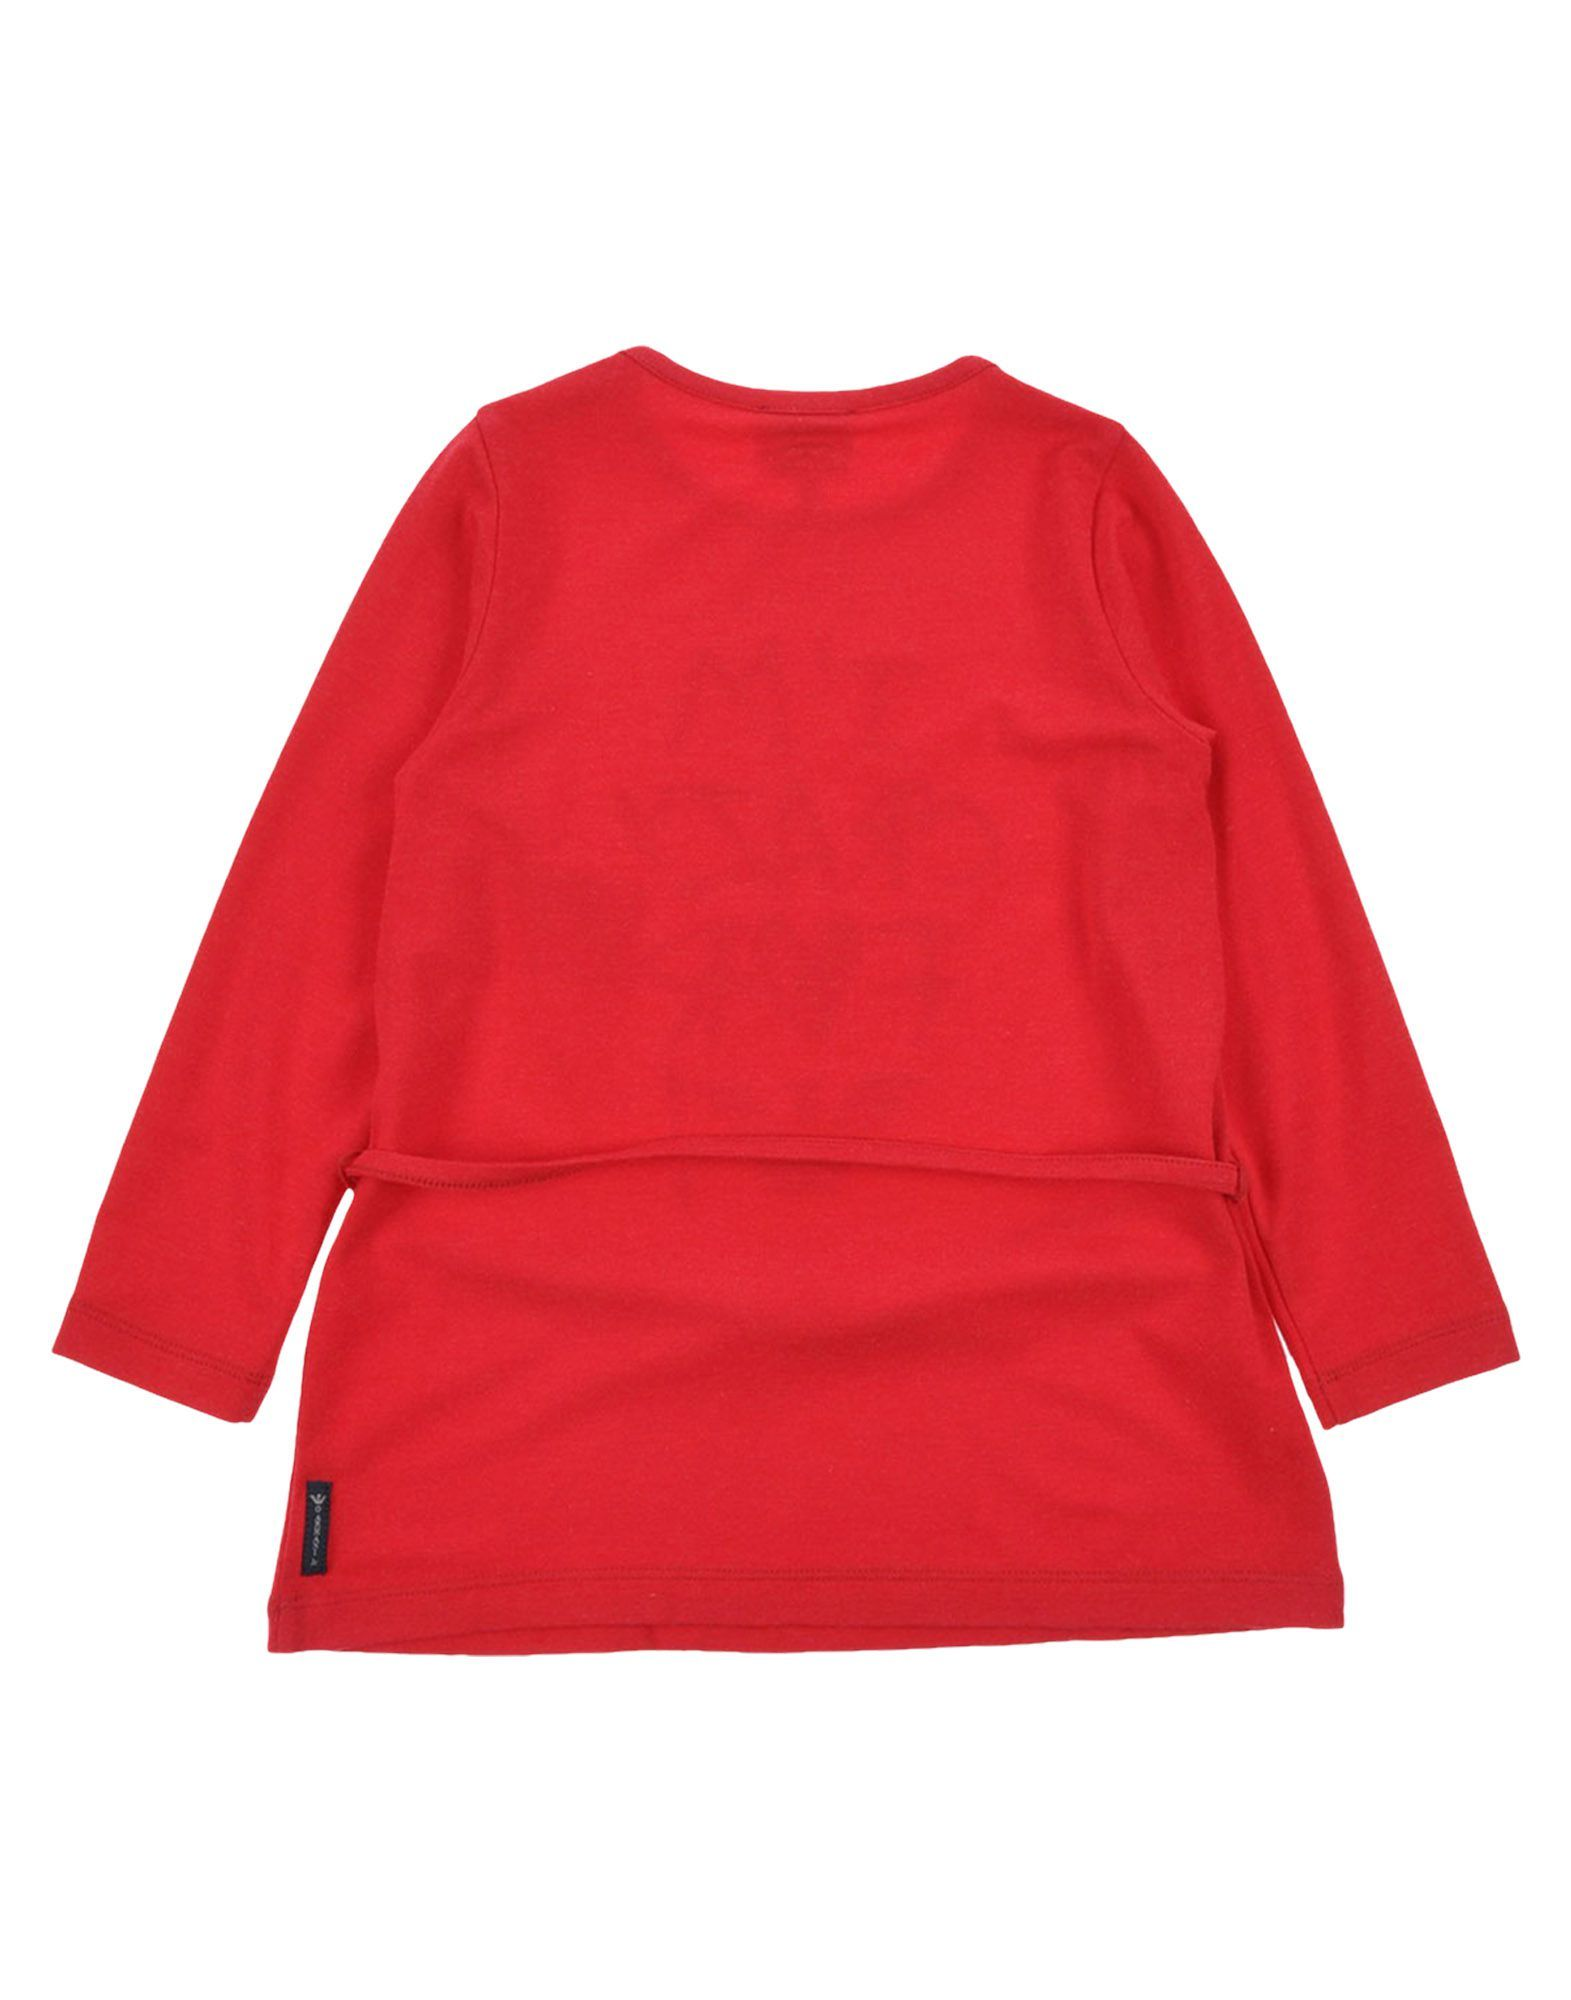 Armani Junior Red Girls T-Shirt